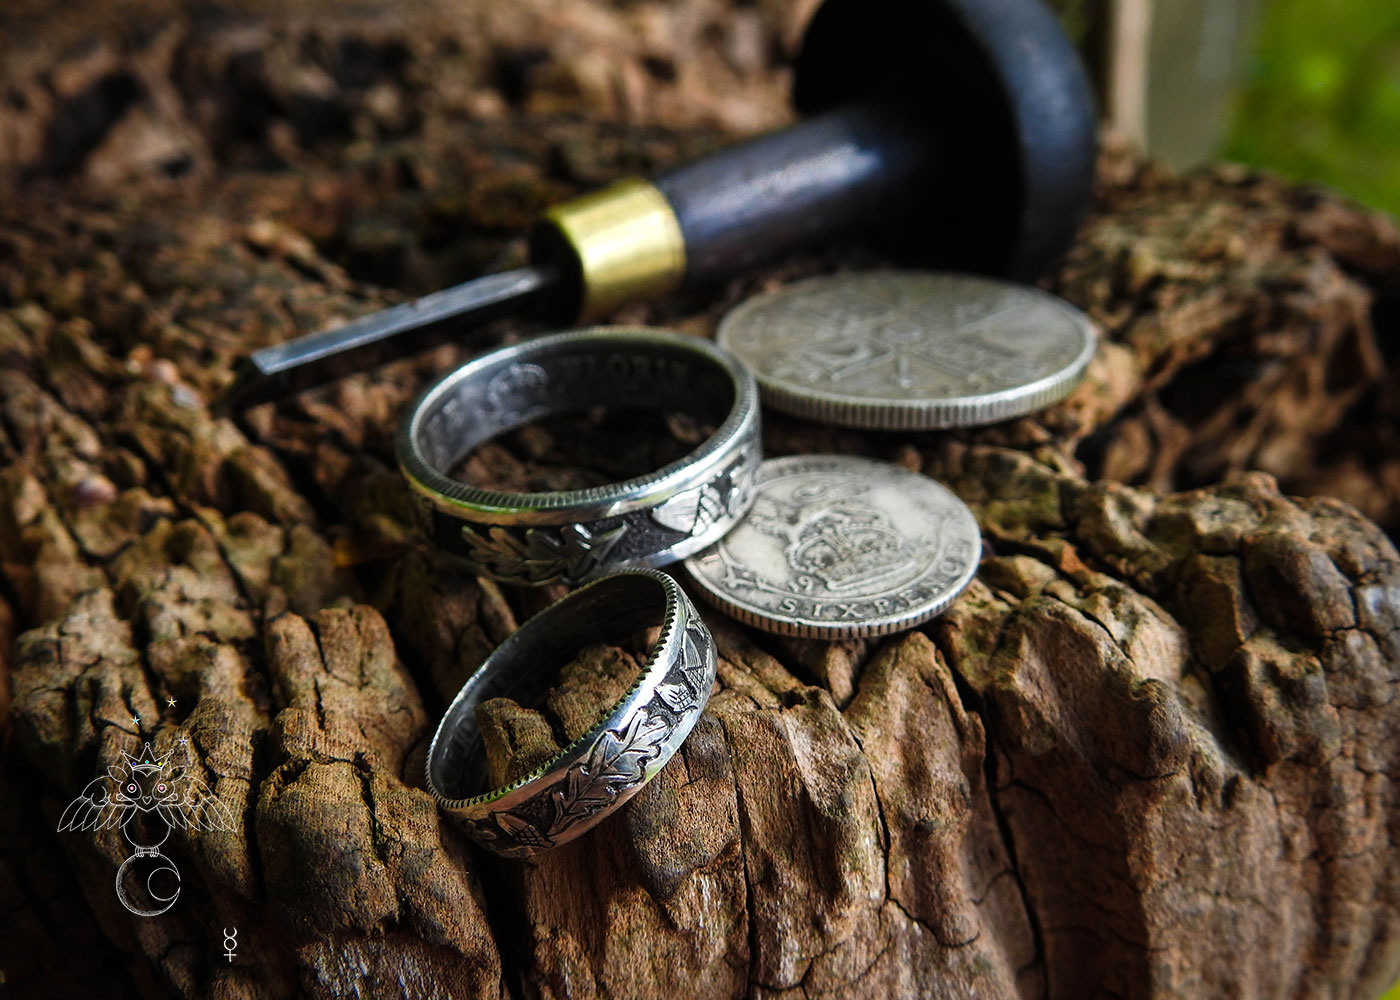 Oak Leaf coin ring - Recycled sterling silver coin